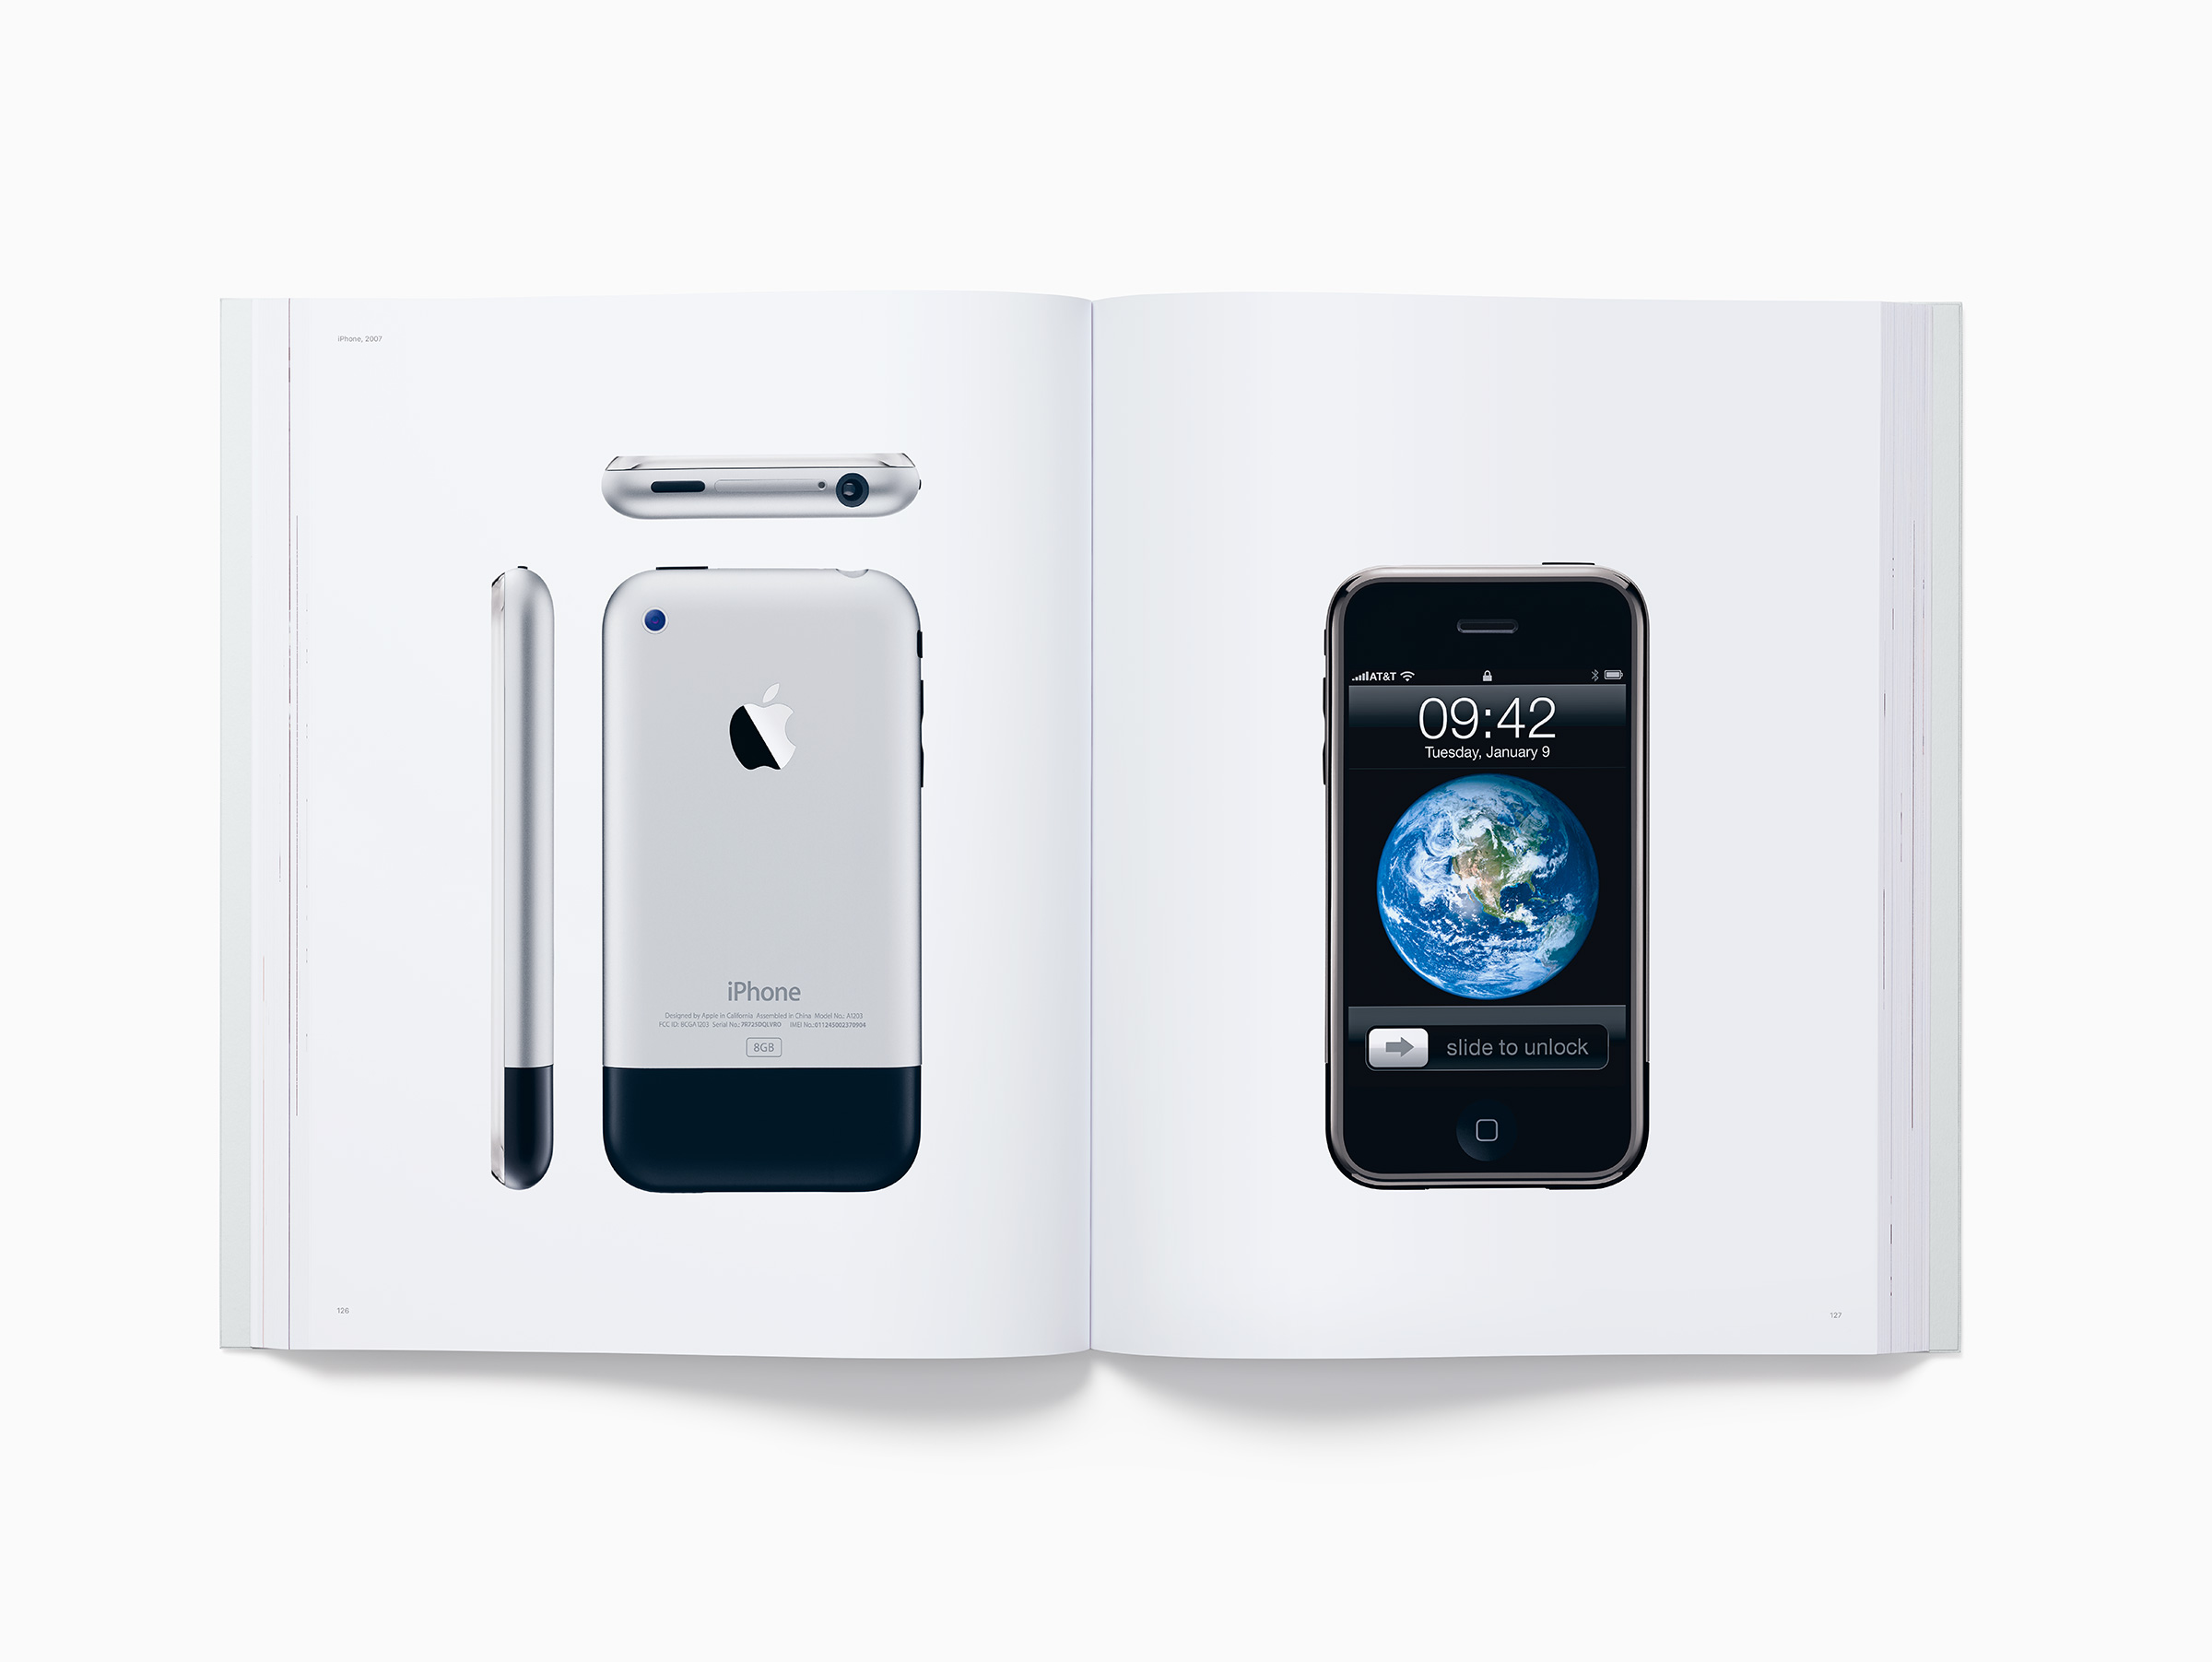 Designed by Apple: il libro fotografico sui prodotti Apple